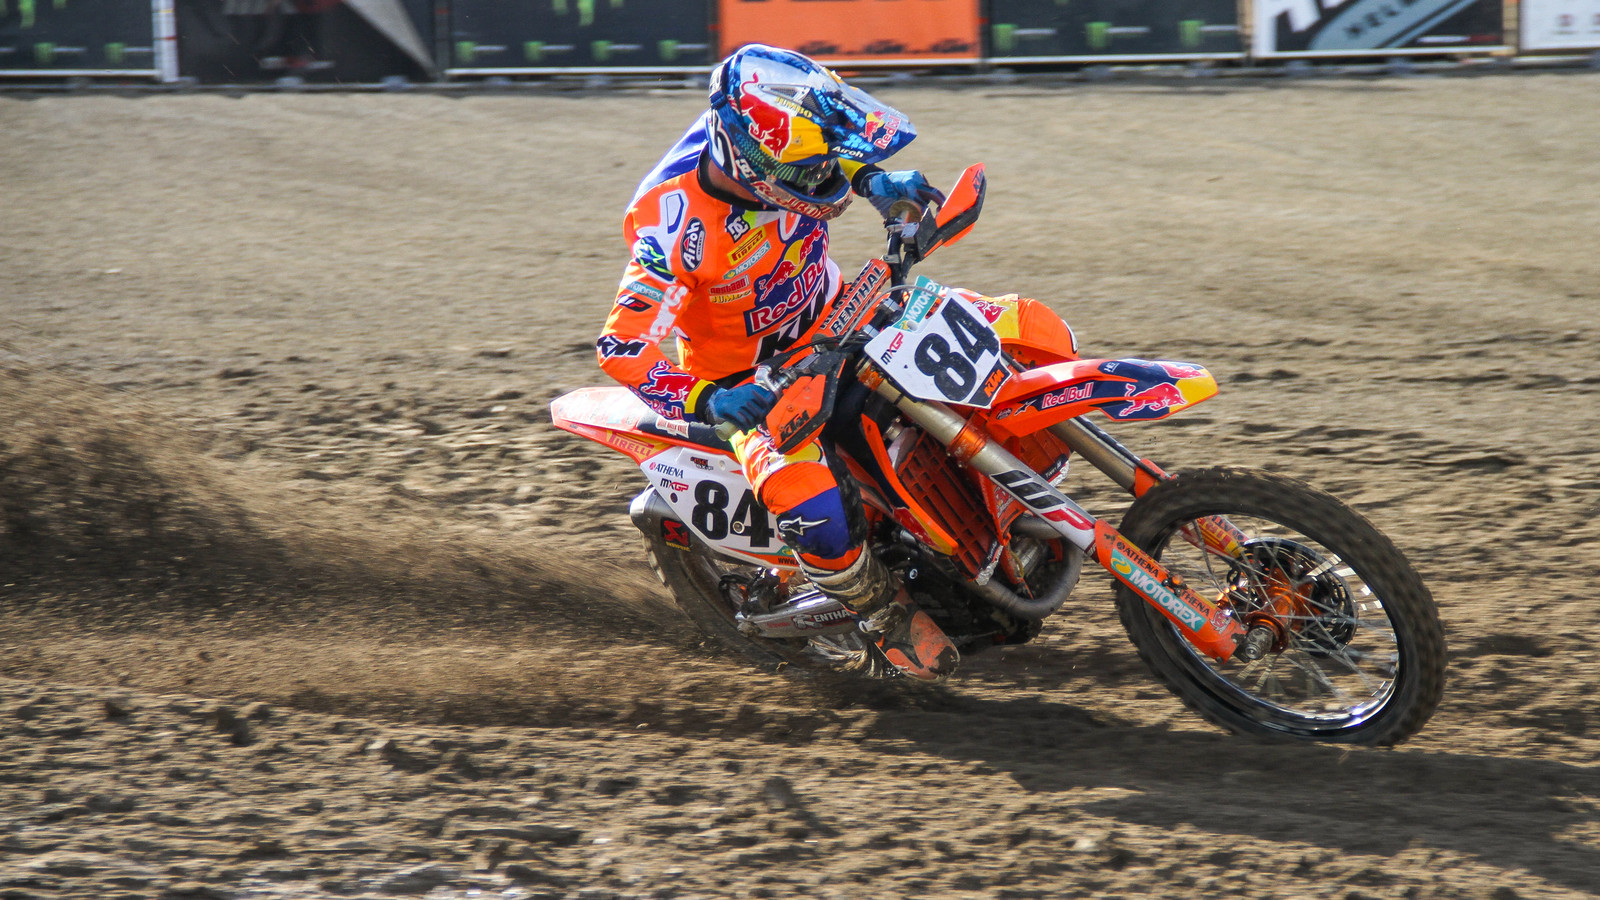 Jeffrey Herlings to Race the AMA Motocross Finale at Ironman MX?